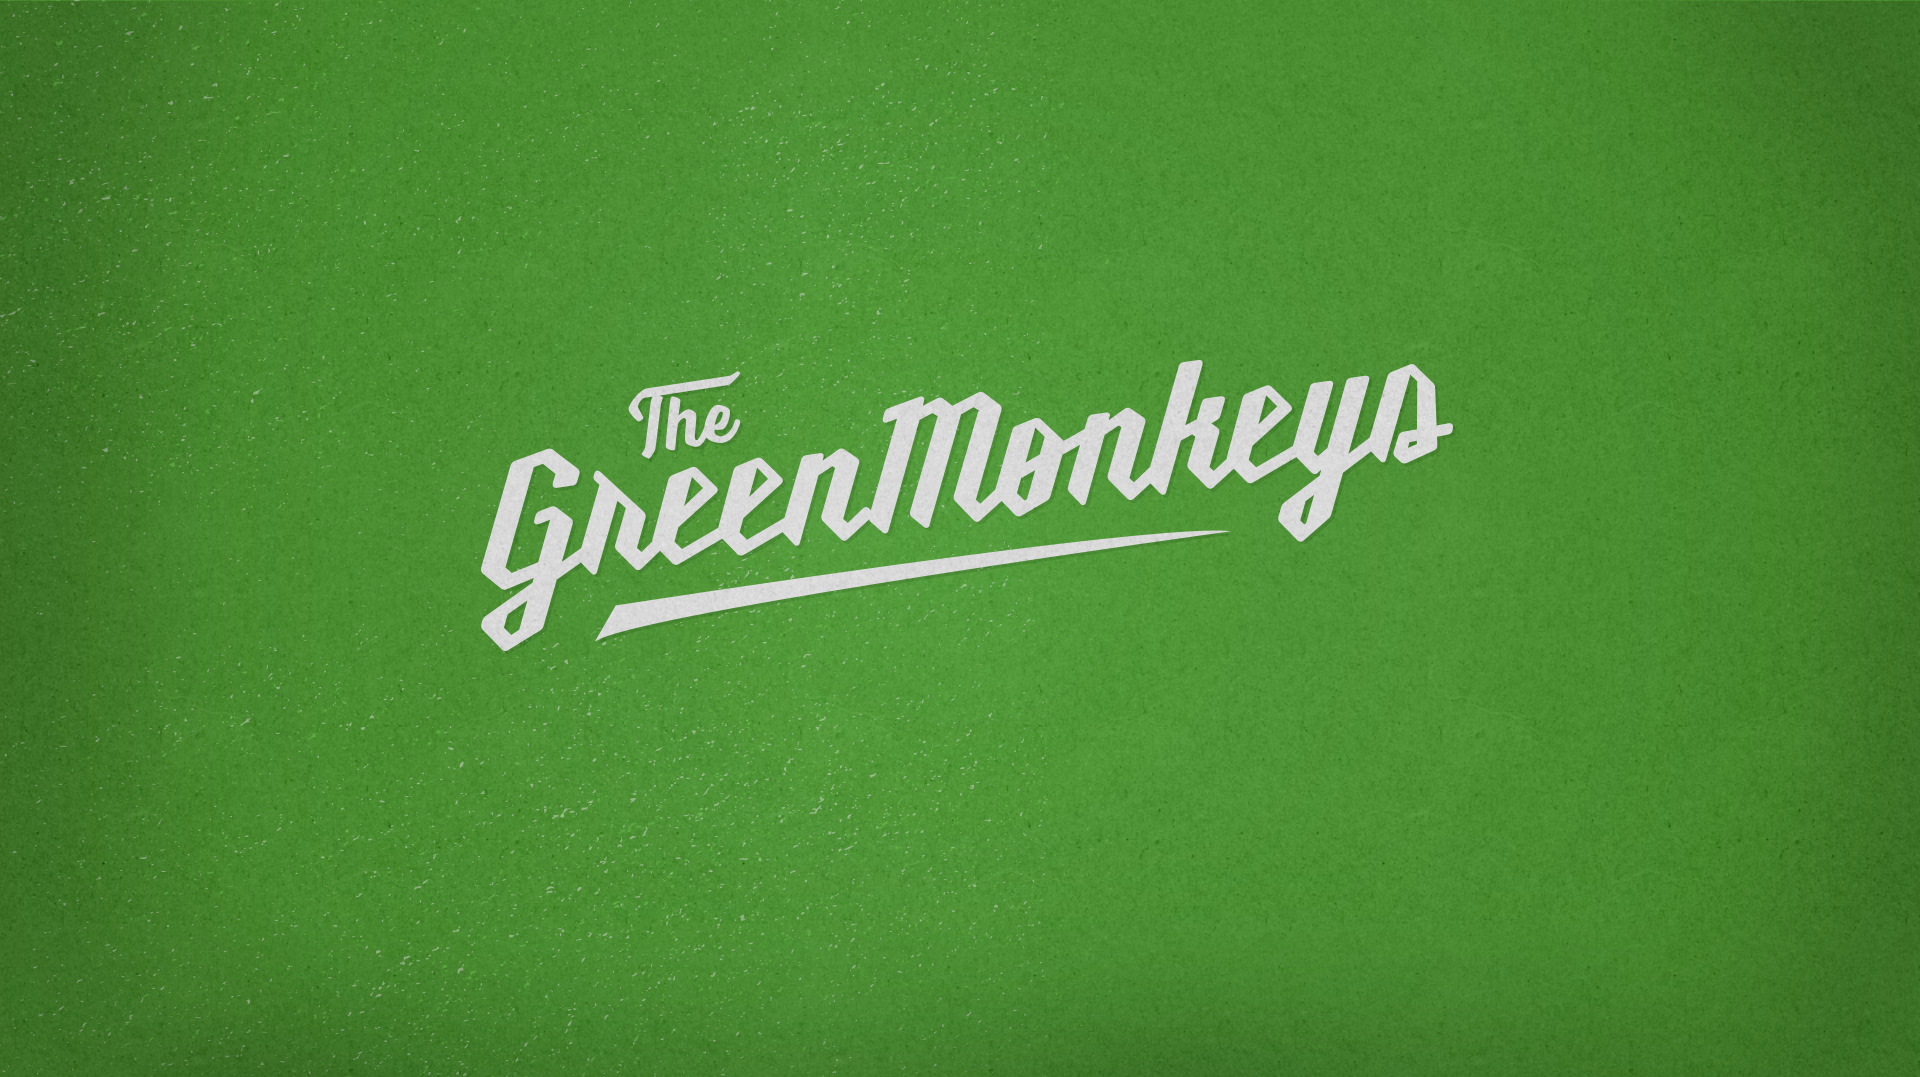 THE GREENMONKEYS